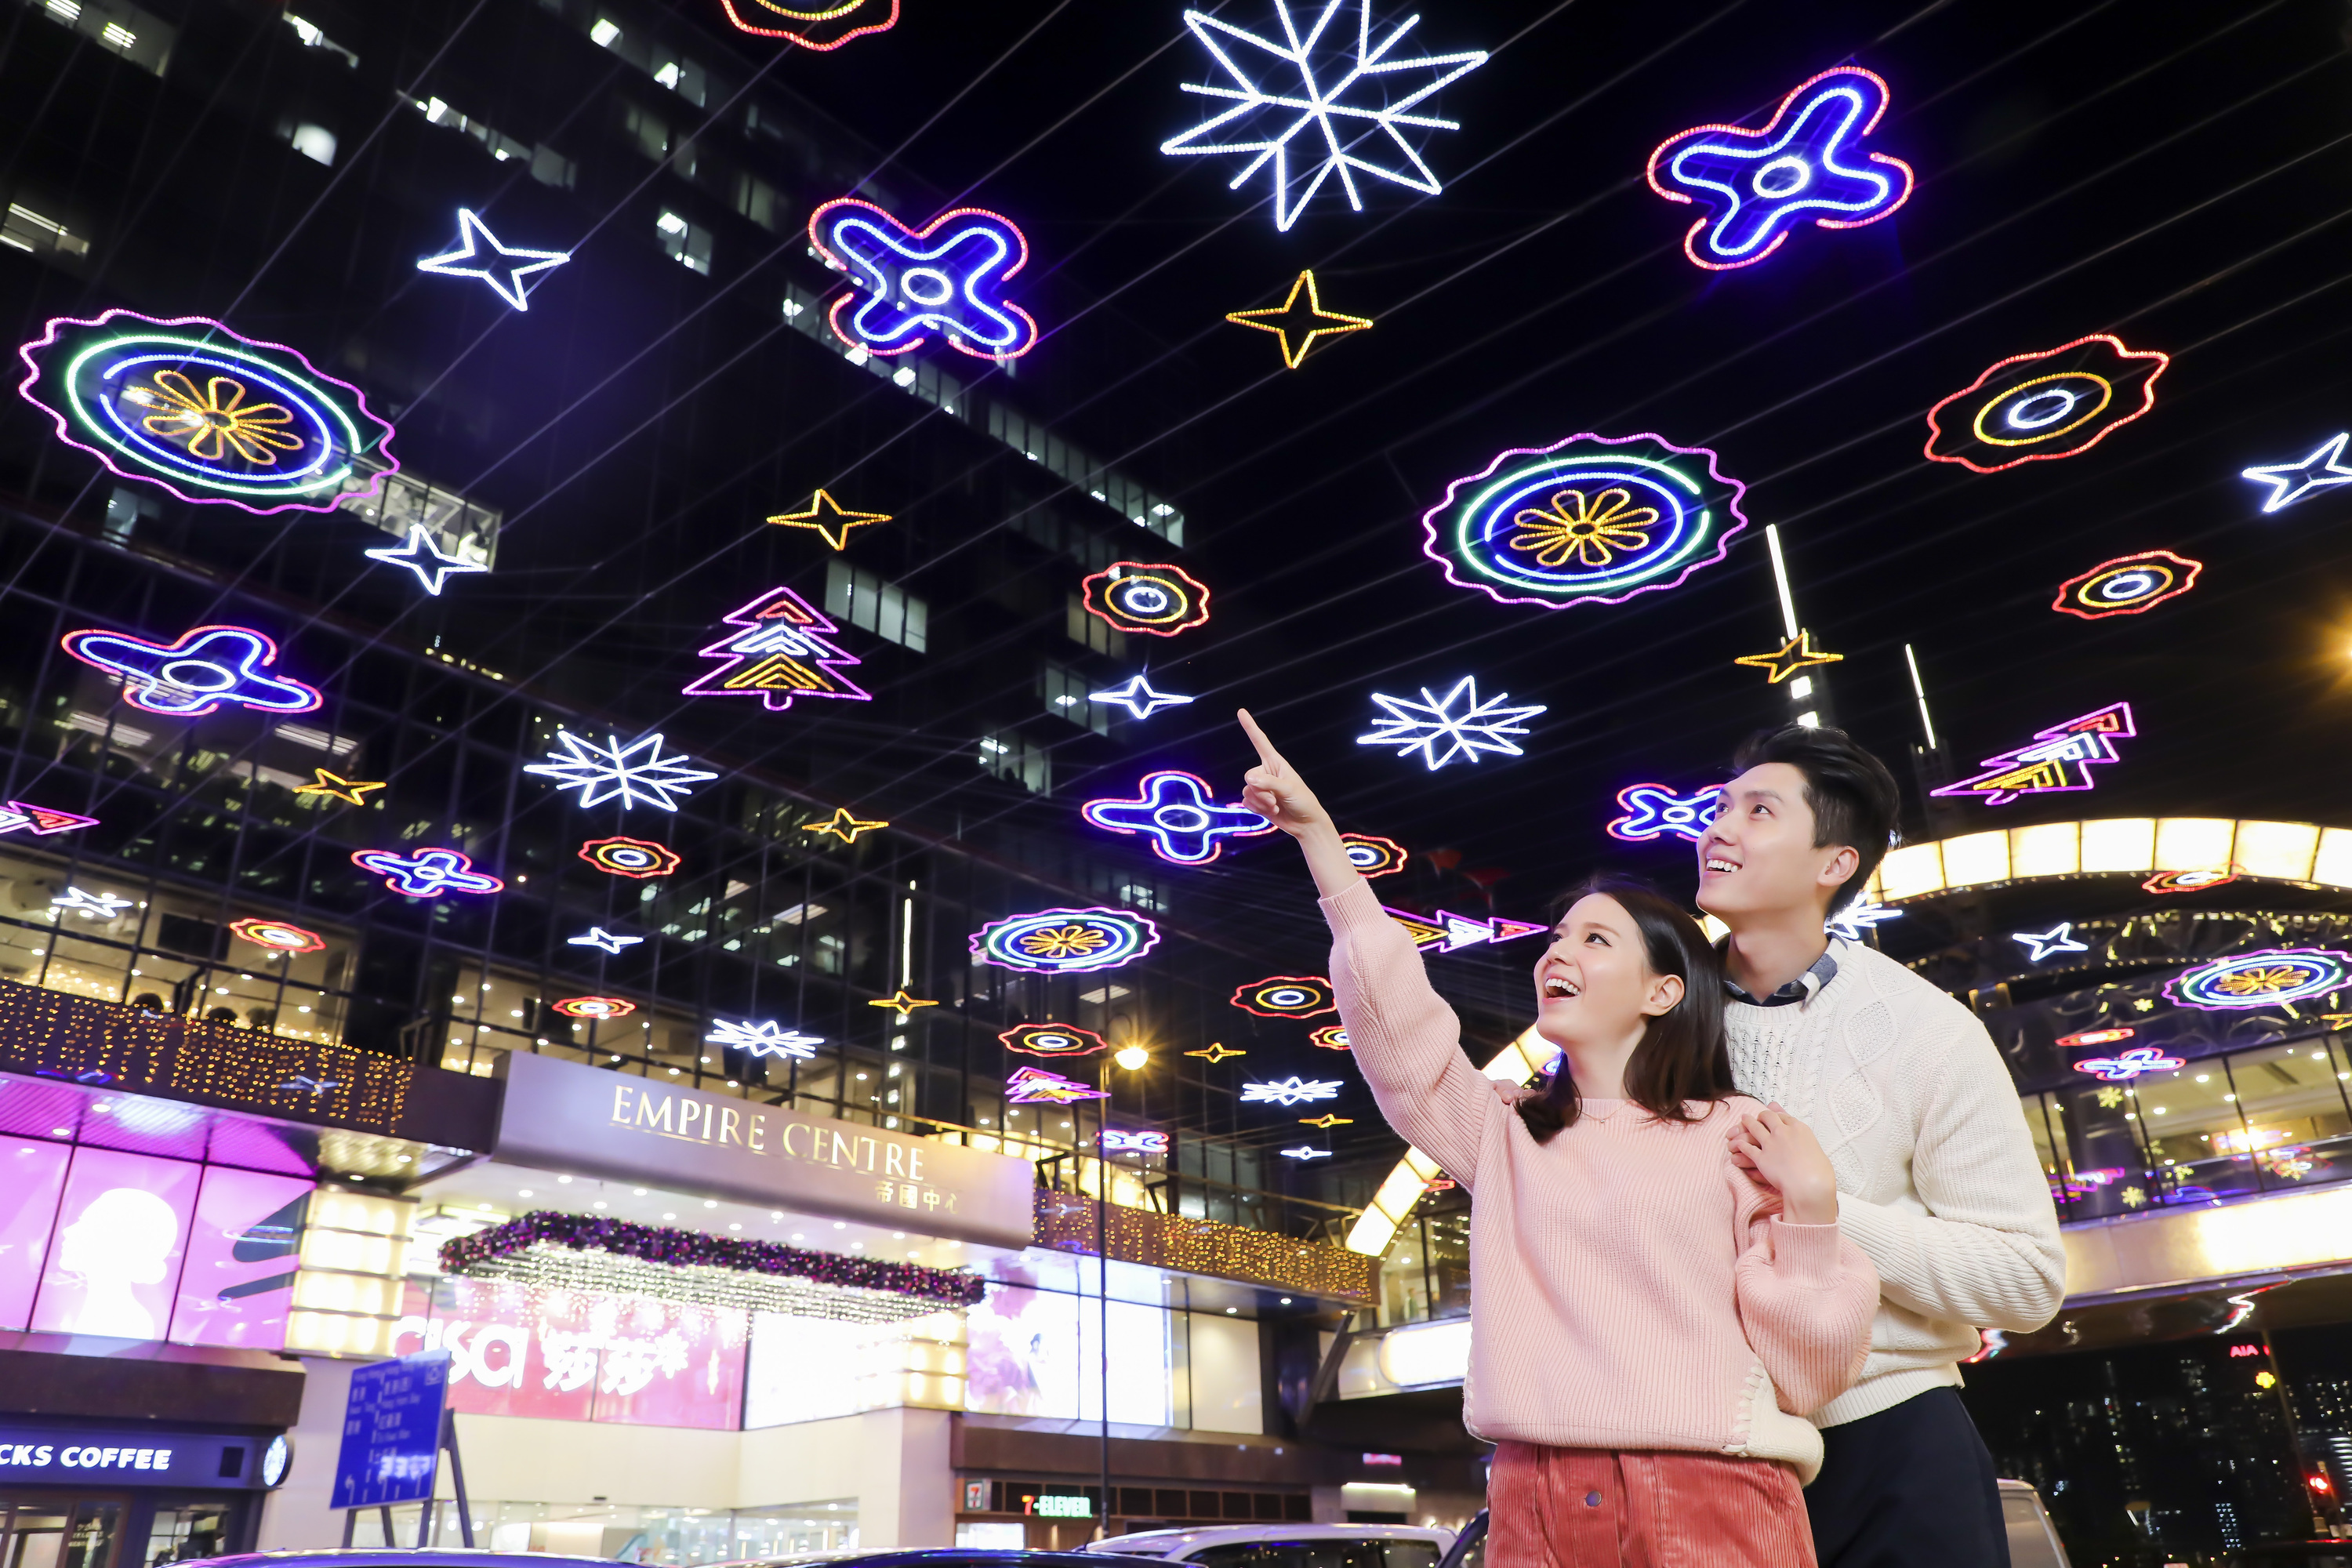 Best restaurants in Tsim Sha Tsui East for a Christmas meal